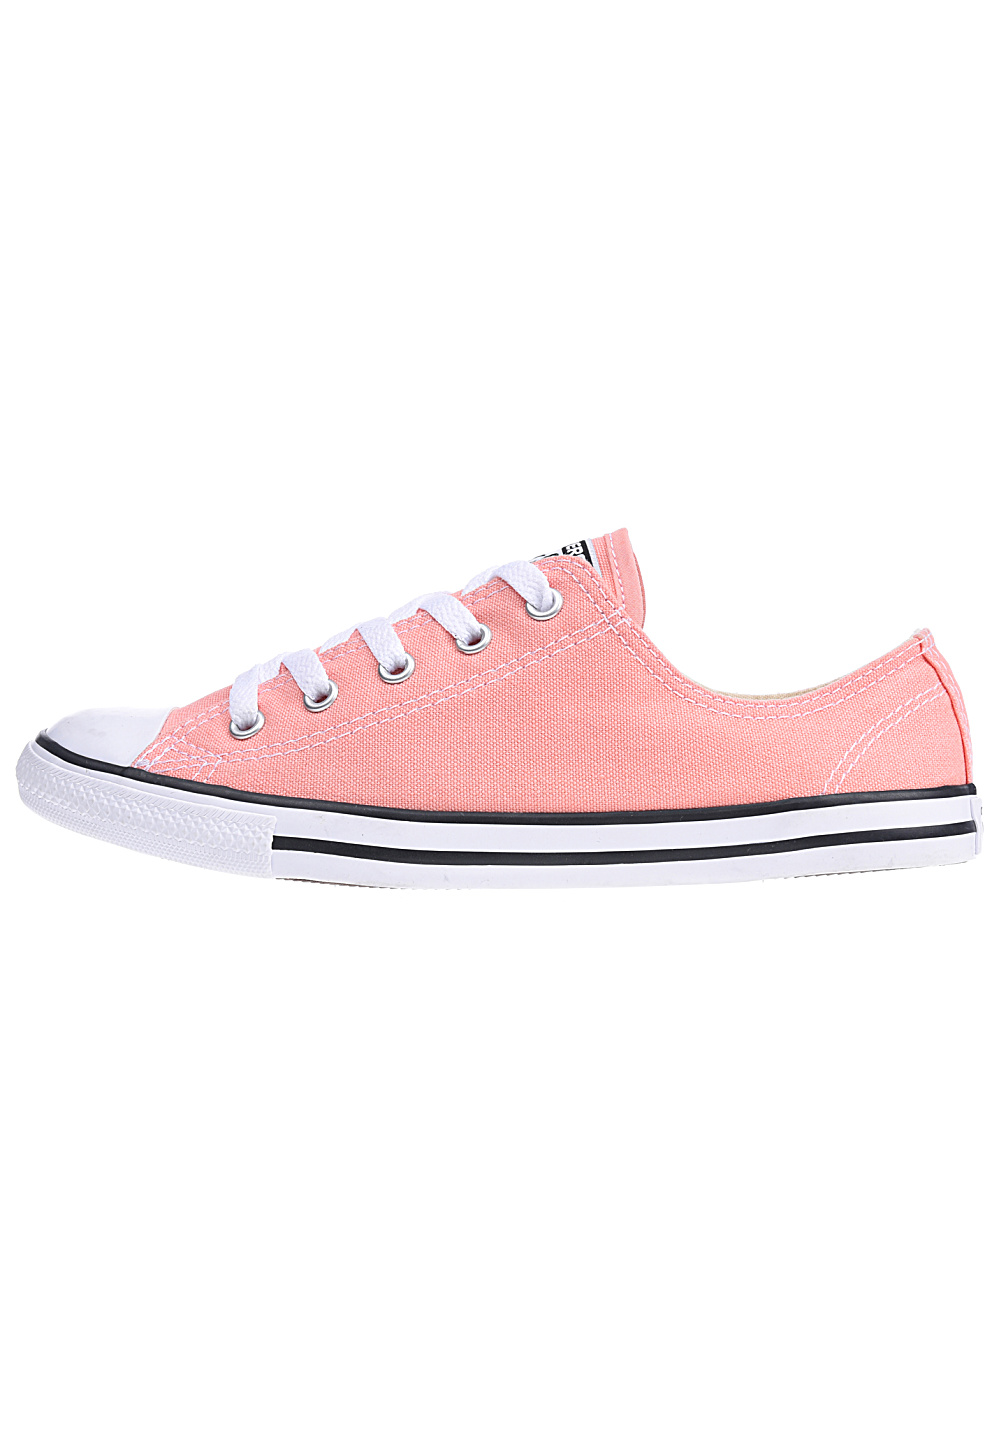 f8fabc29f029b5 Converse Chuck Taylor All Star Dainty OX - Sneakers for Women - Pink ...